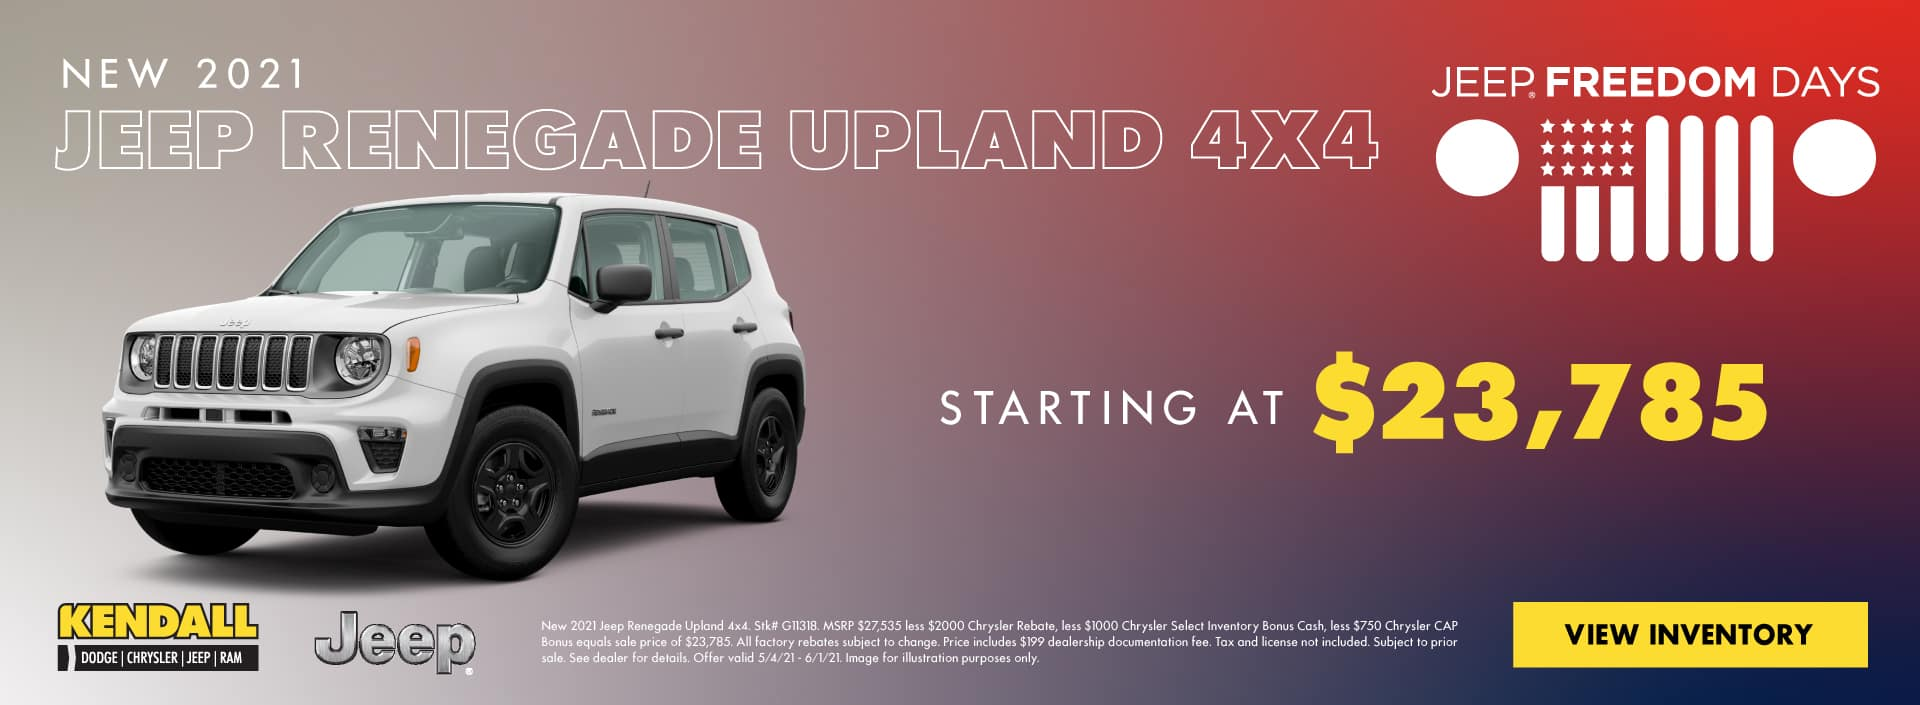 17529-soldod-May21-Web-Banners-JEEP-RENEGADE